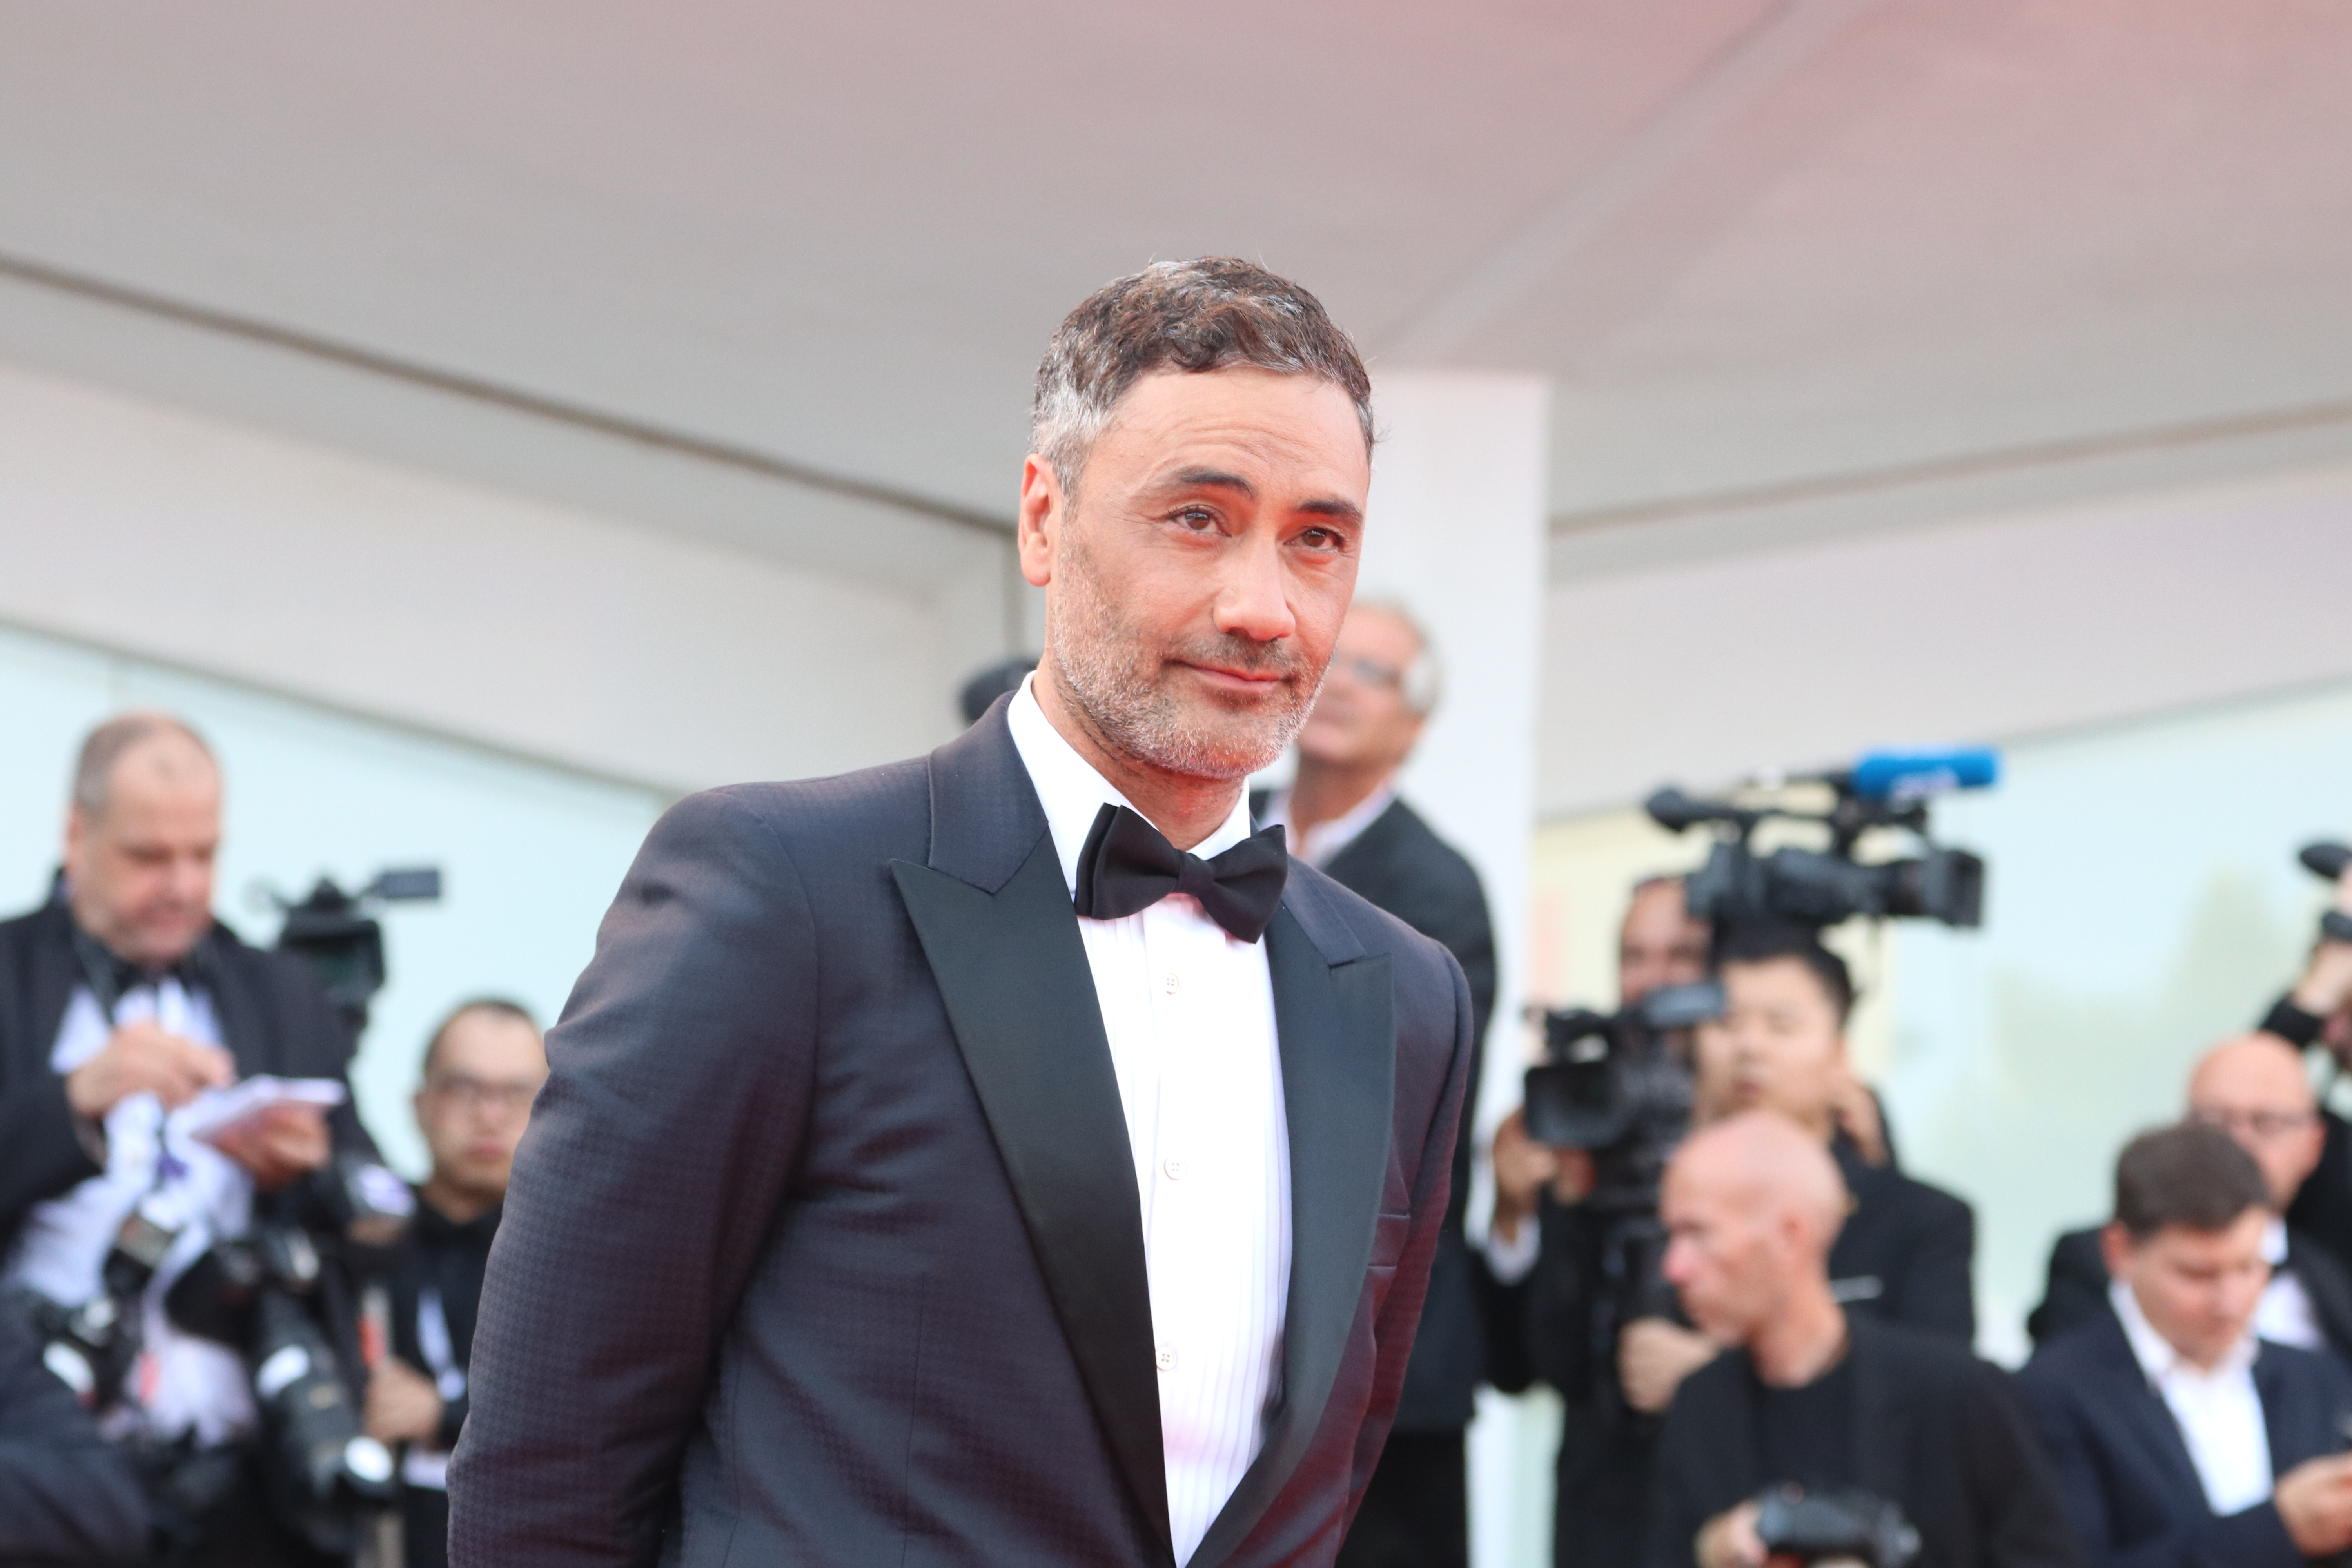 Venezia 2018: uno scatto di Taika Waititi sul red carpet di apertura